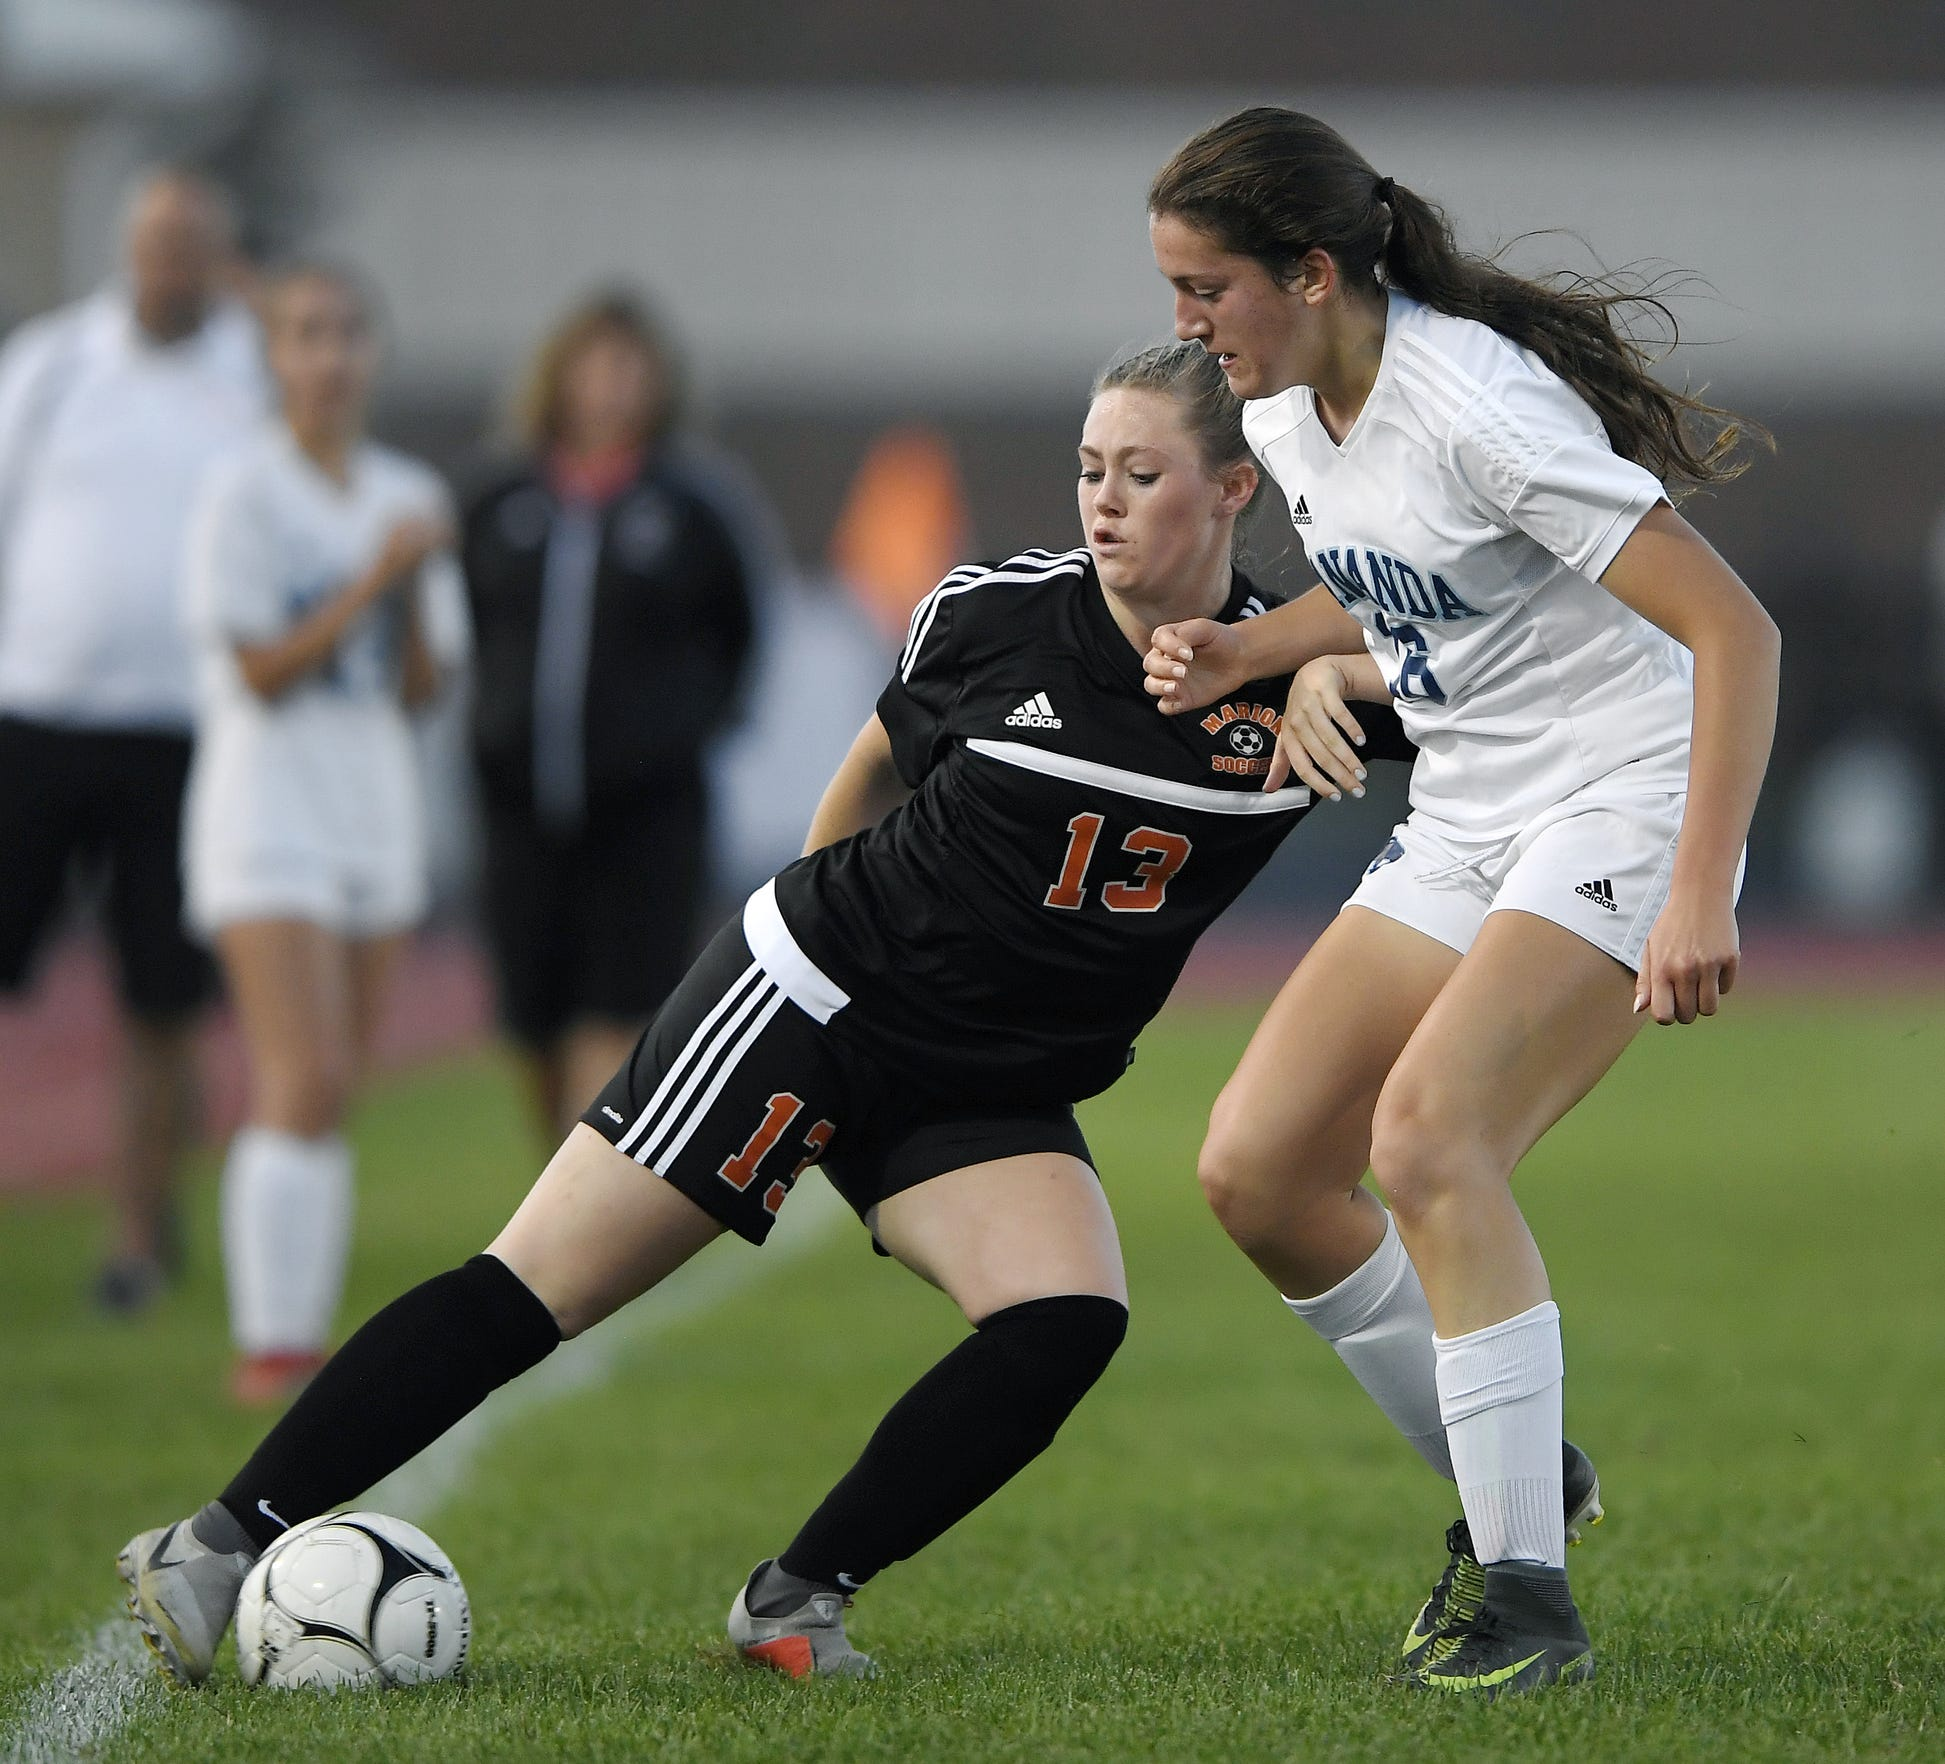 Marion's Chloe DeLyser, left, keeps the ball in play while defended by Gananda's Natalie McLoud.